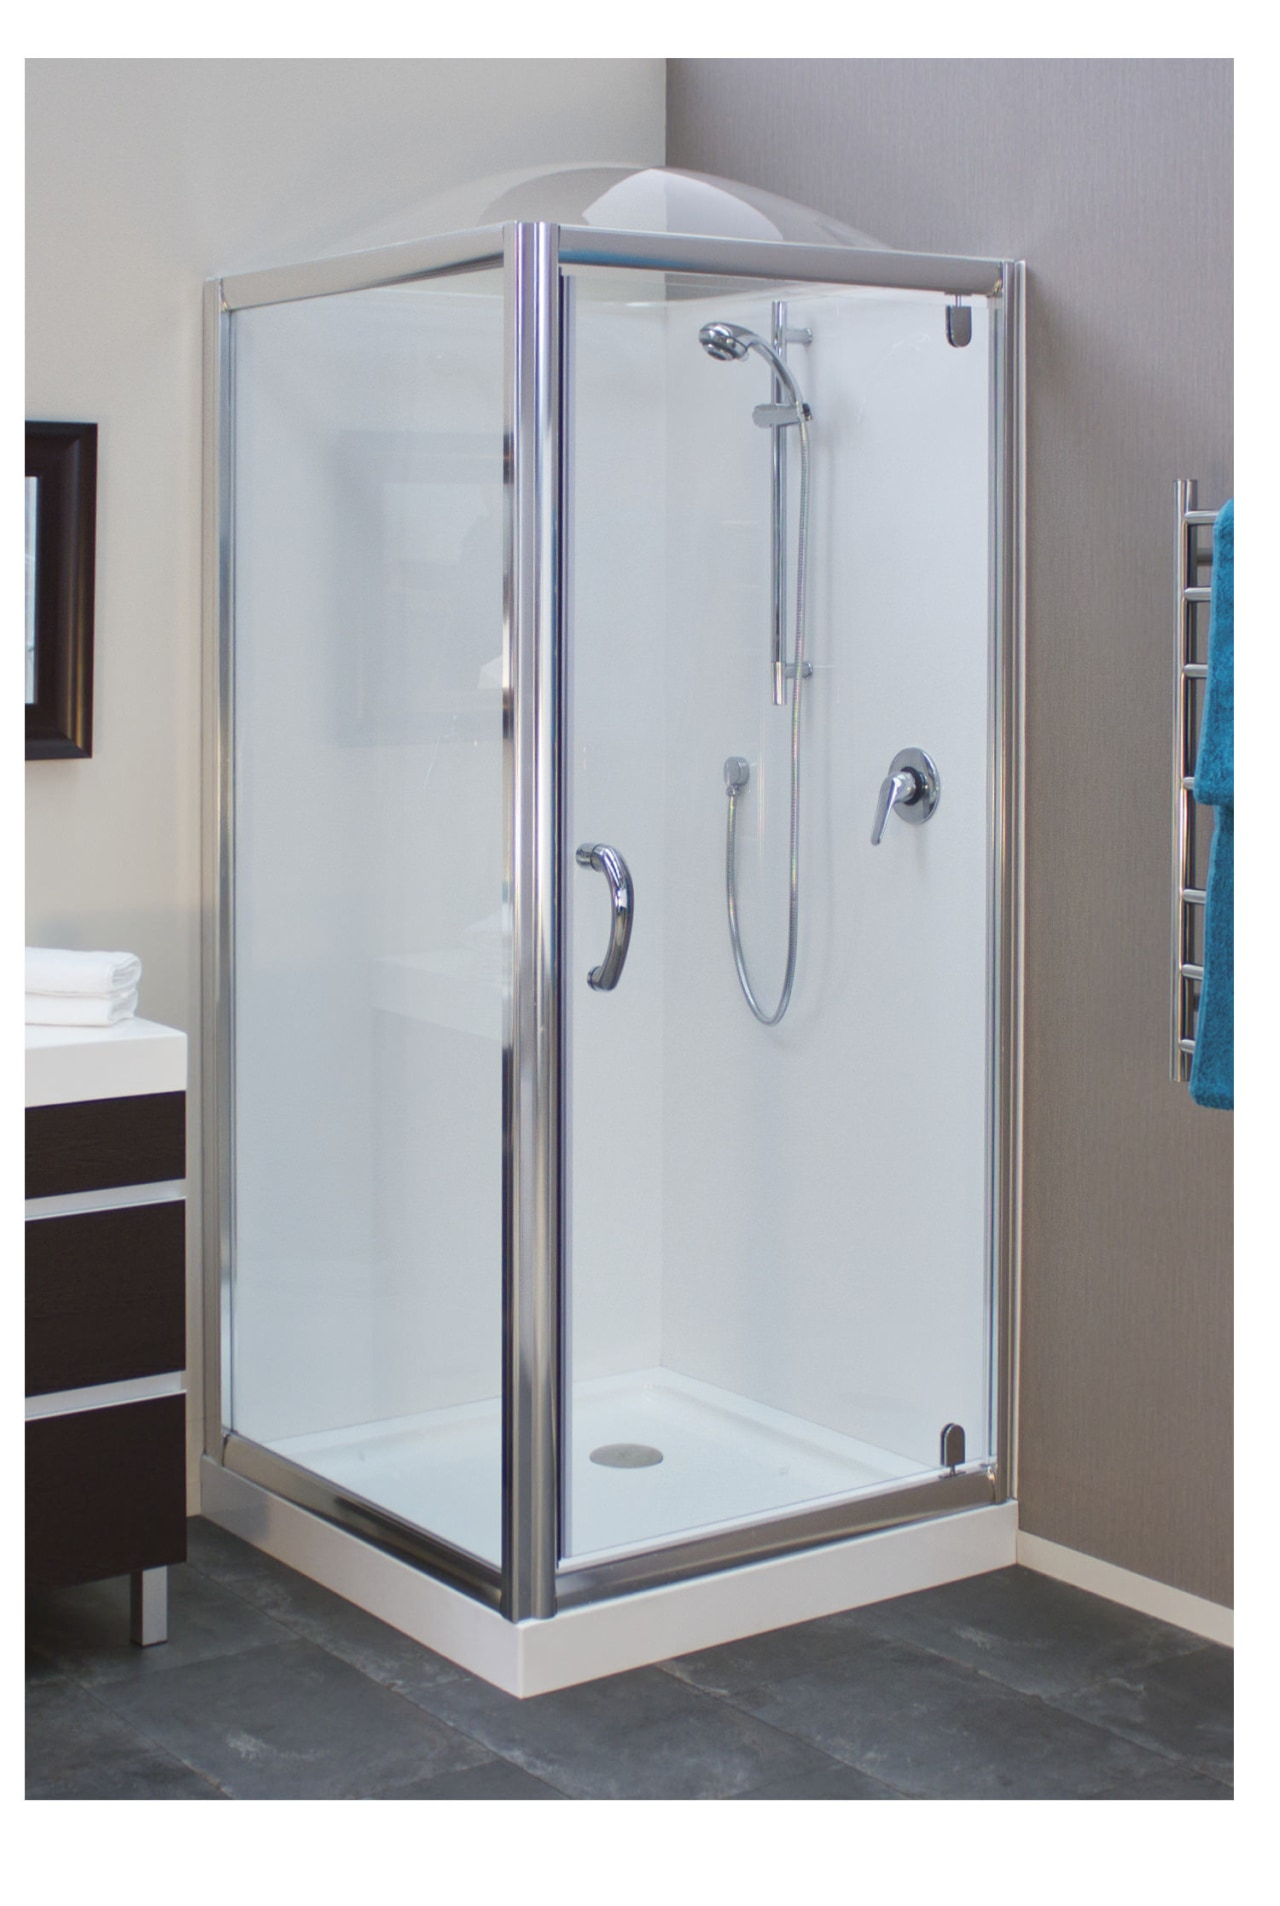 Simple but highly effective  introducing a Showerdome angle, plumbing fixture, shower, shower door, gray